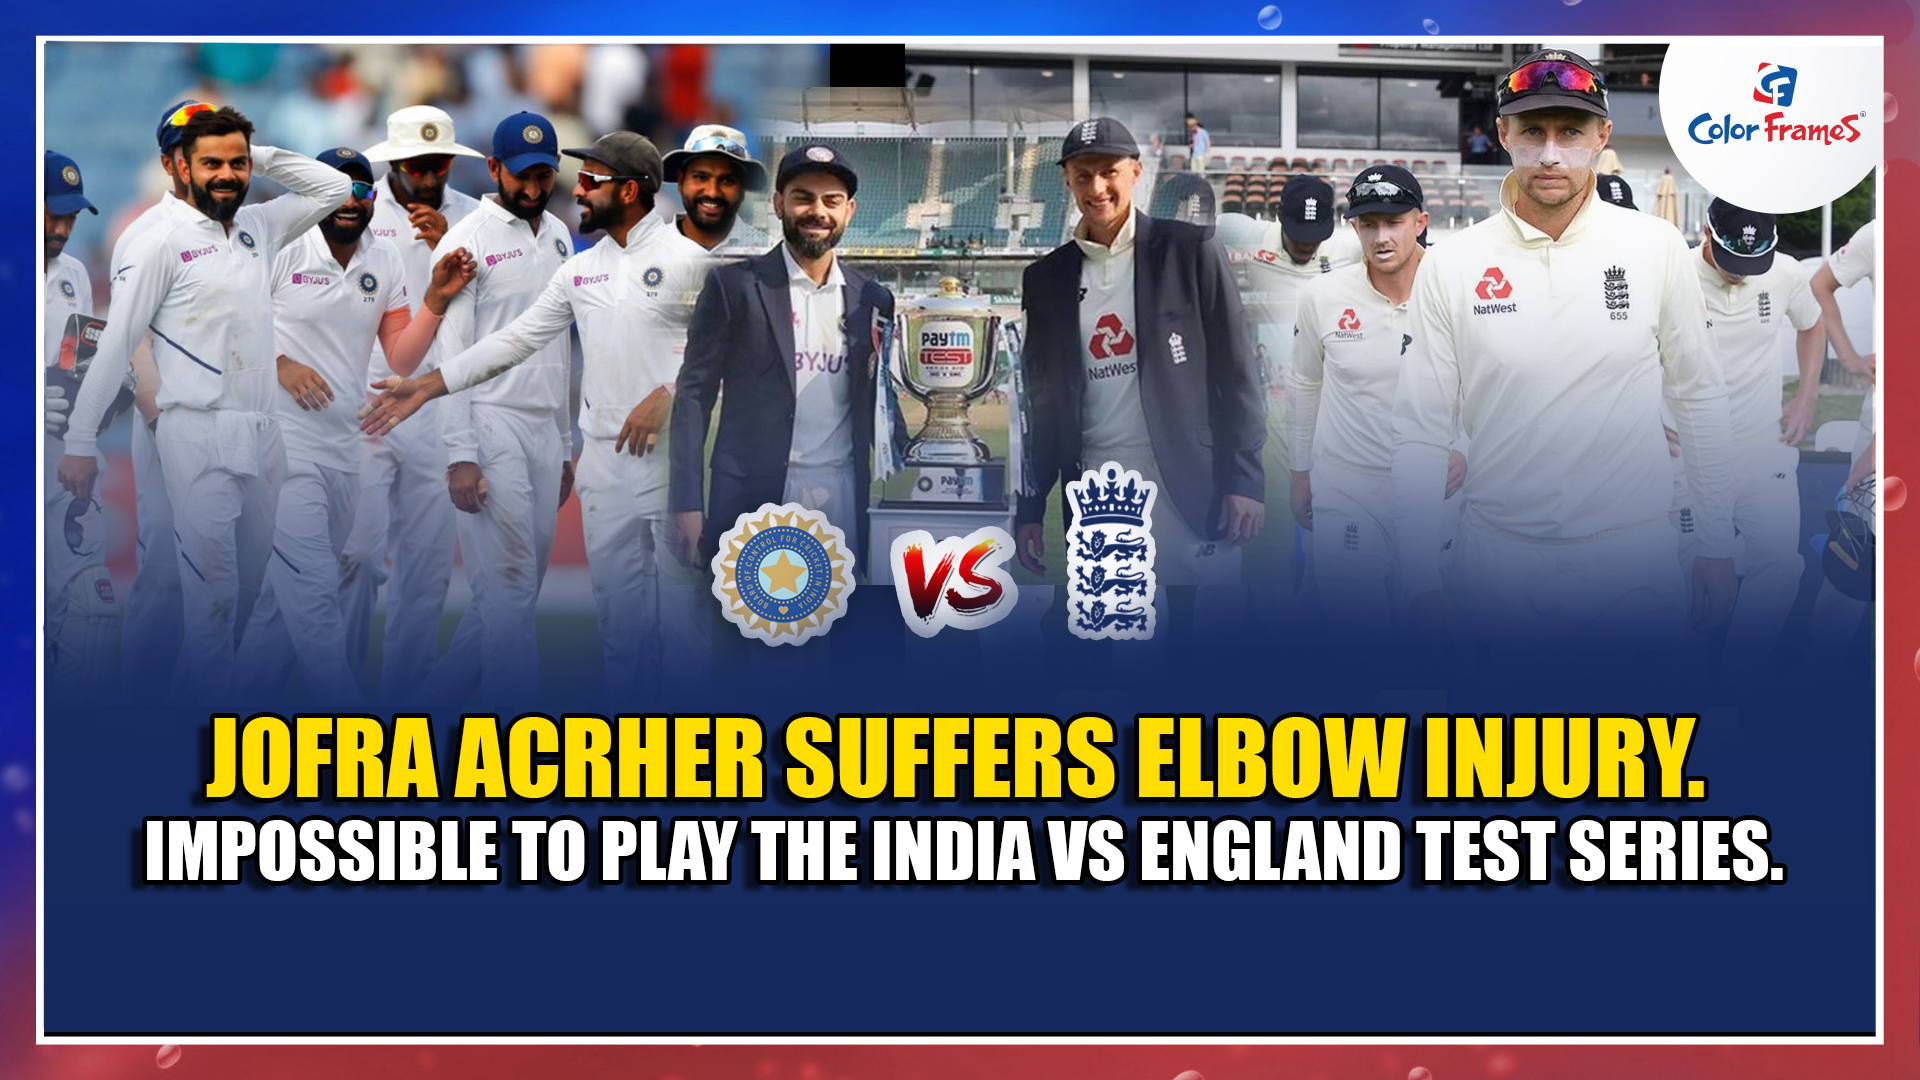 Jofra Acrher suffers elbow injury. Impossible to play the India vs England Test series.